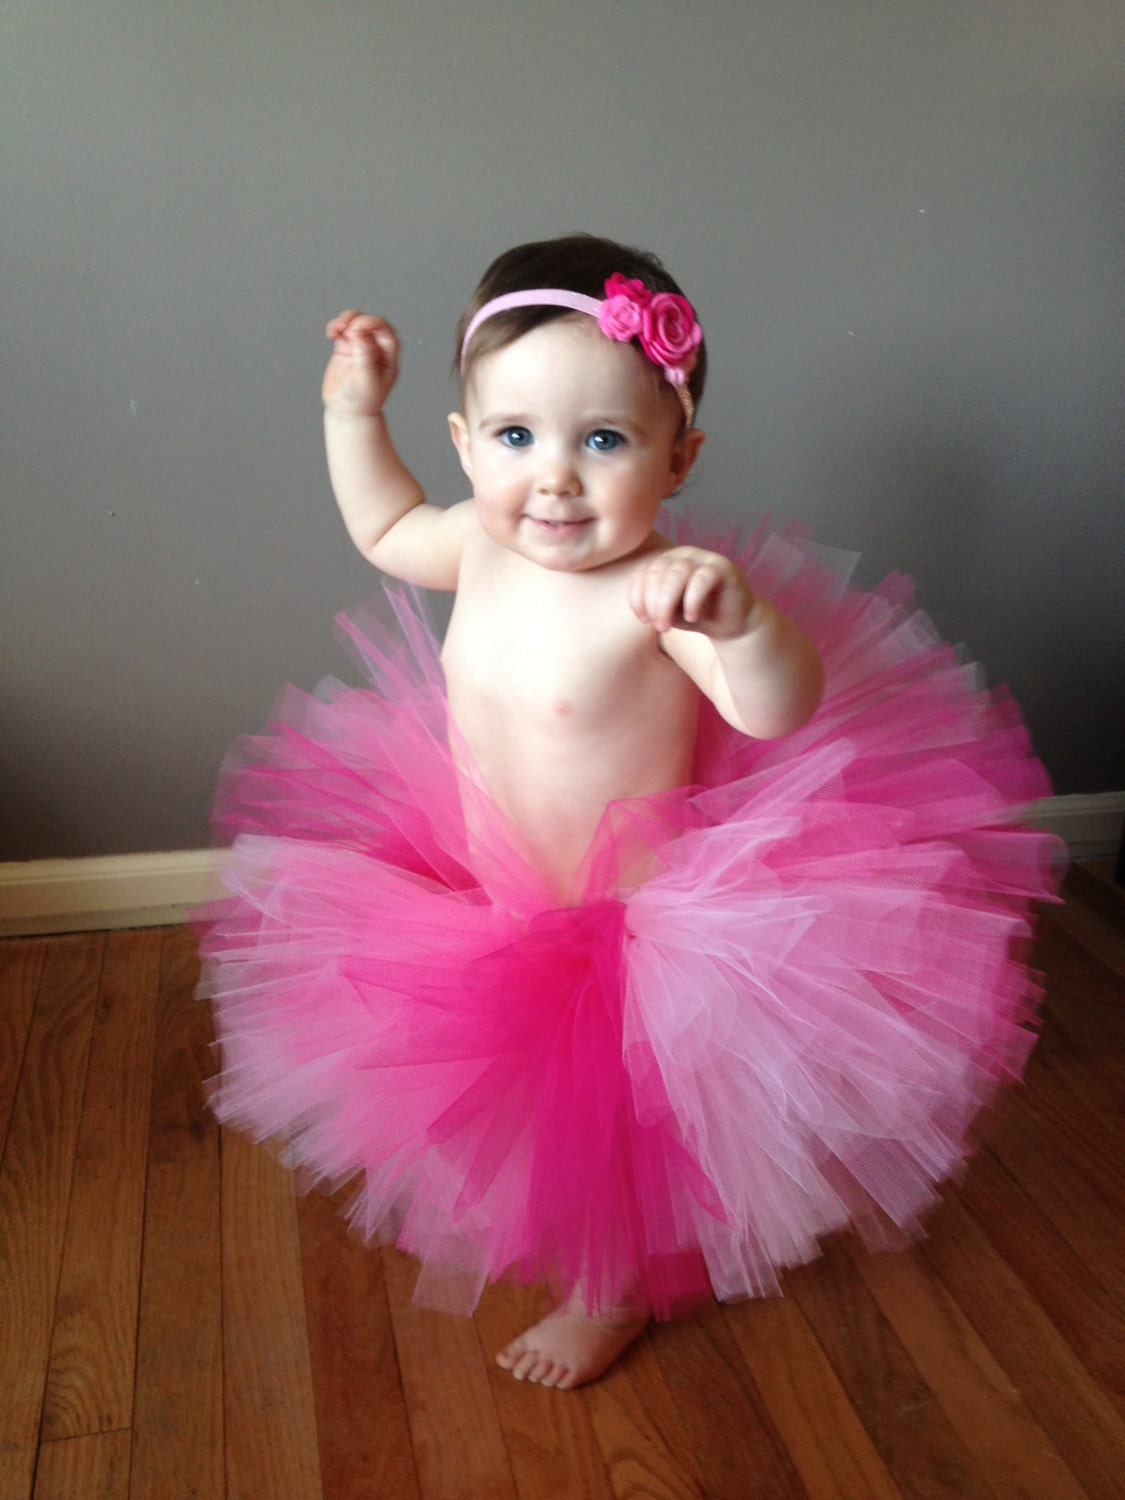 Beautiful little tutus! I have to admit that those frilly pink tutus are one of the things that make having a girl so absolutely fun. My baby girl is now 14 months (technically not even a baby anymore) and I still get a kick out of dressing her up.